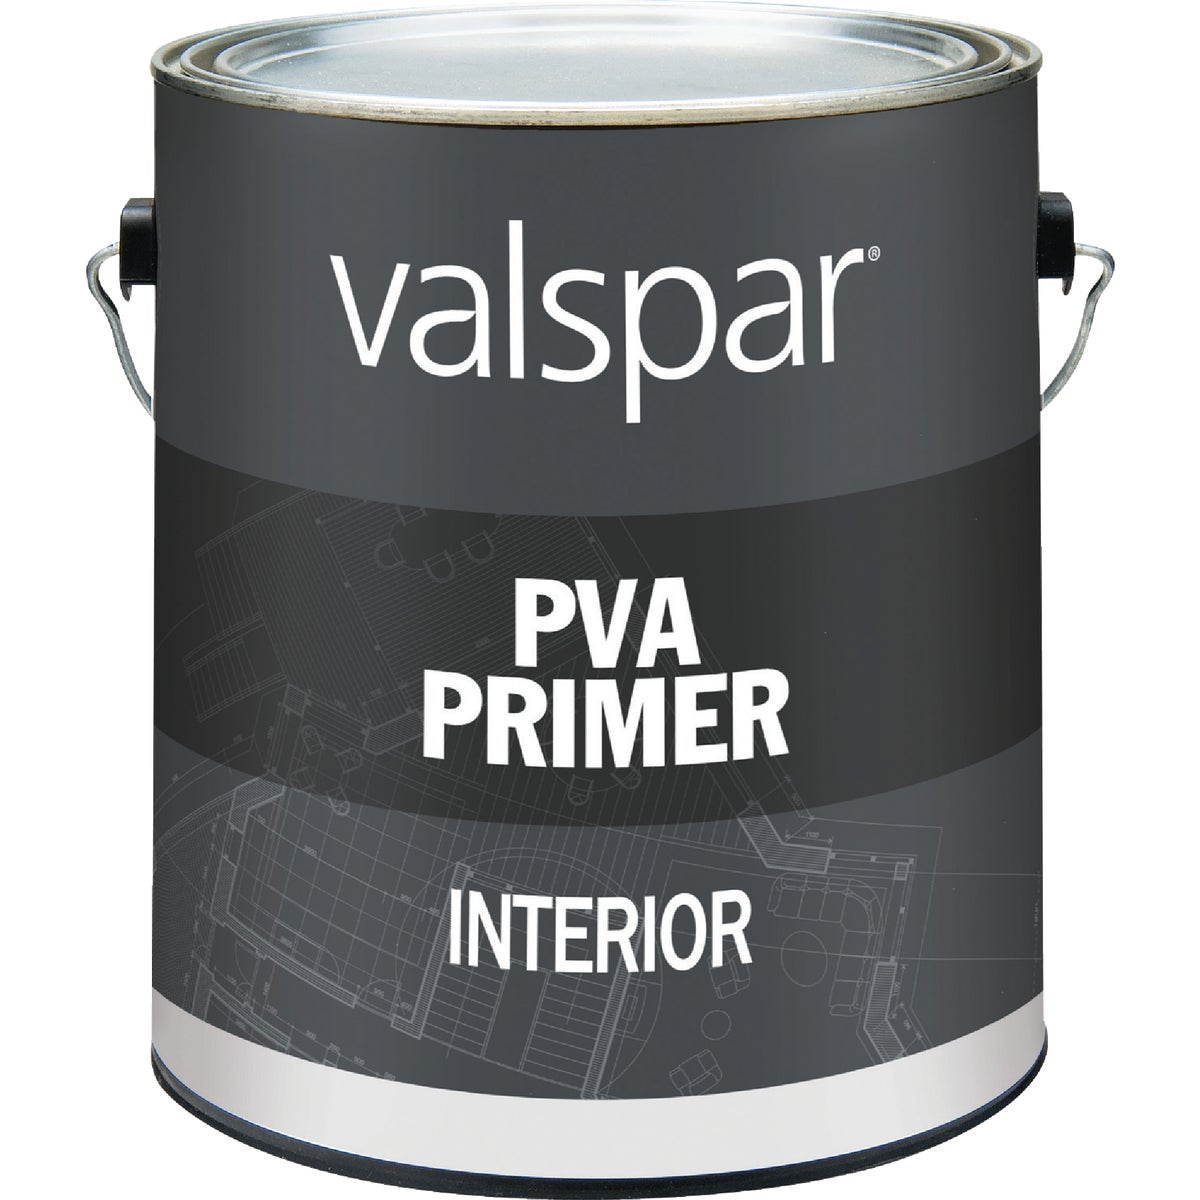 INT LATEX WHT PVA PRIMER